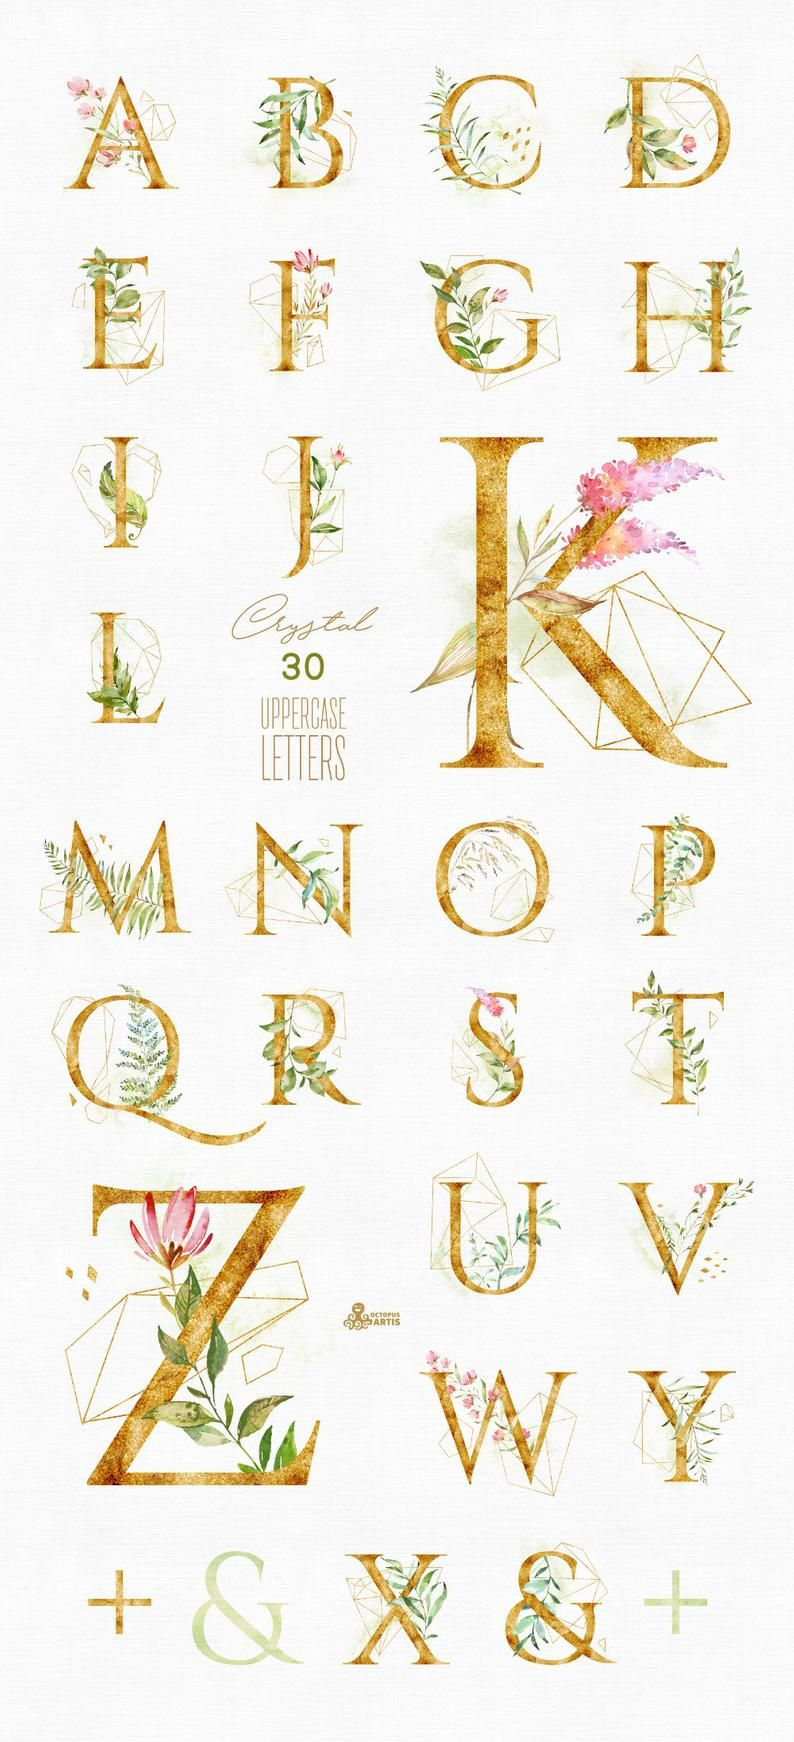 Crystal. Letters. Watercolor floral & alphabet pre-made clipart, leaf, monogram, gold, green, geometric, wild, wedding, bridal, logo, diy